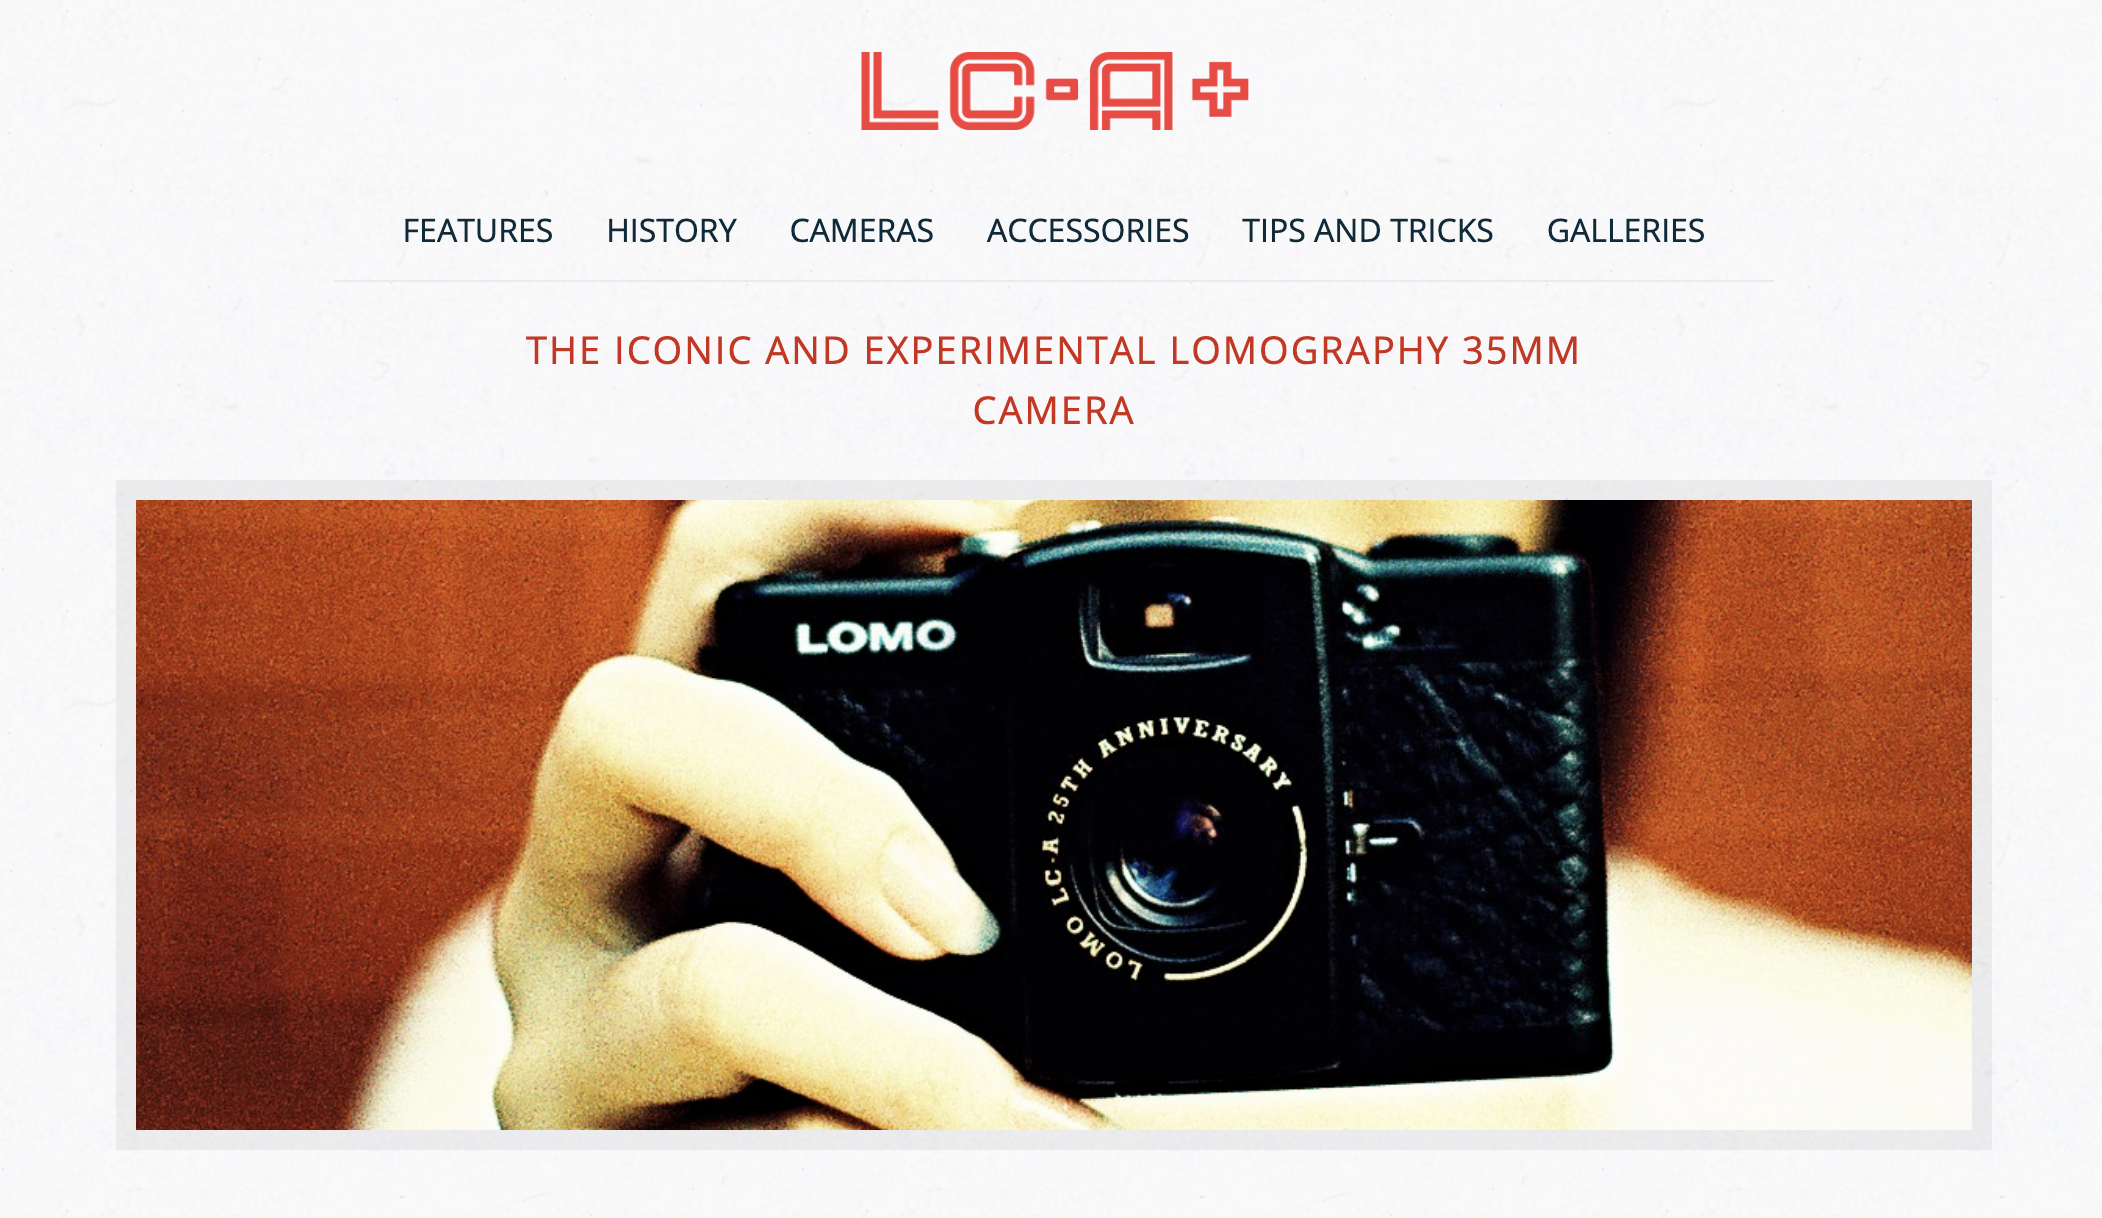 lomography introduces compact lc medium format camera